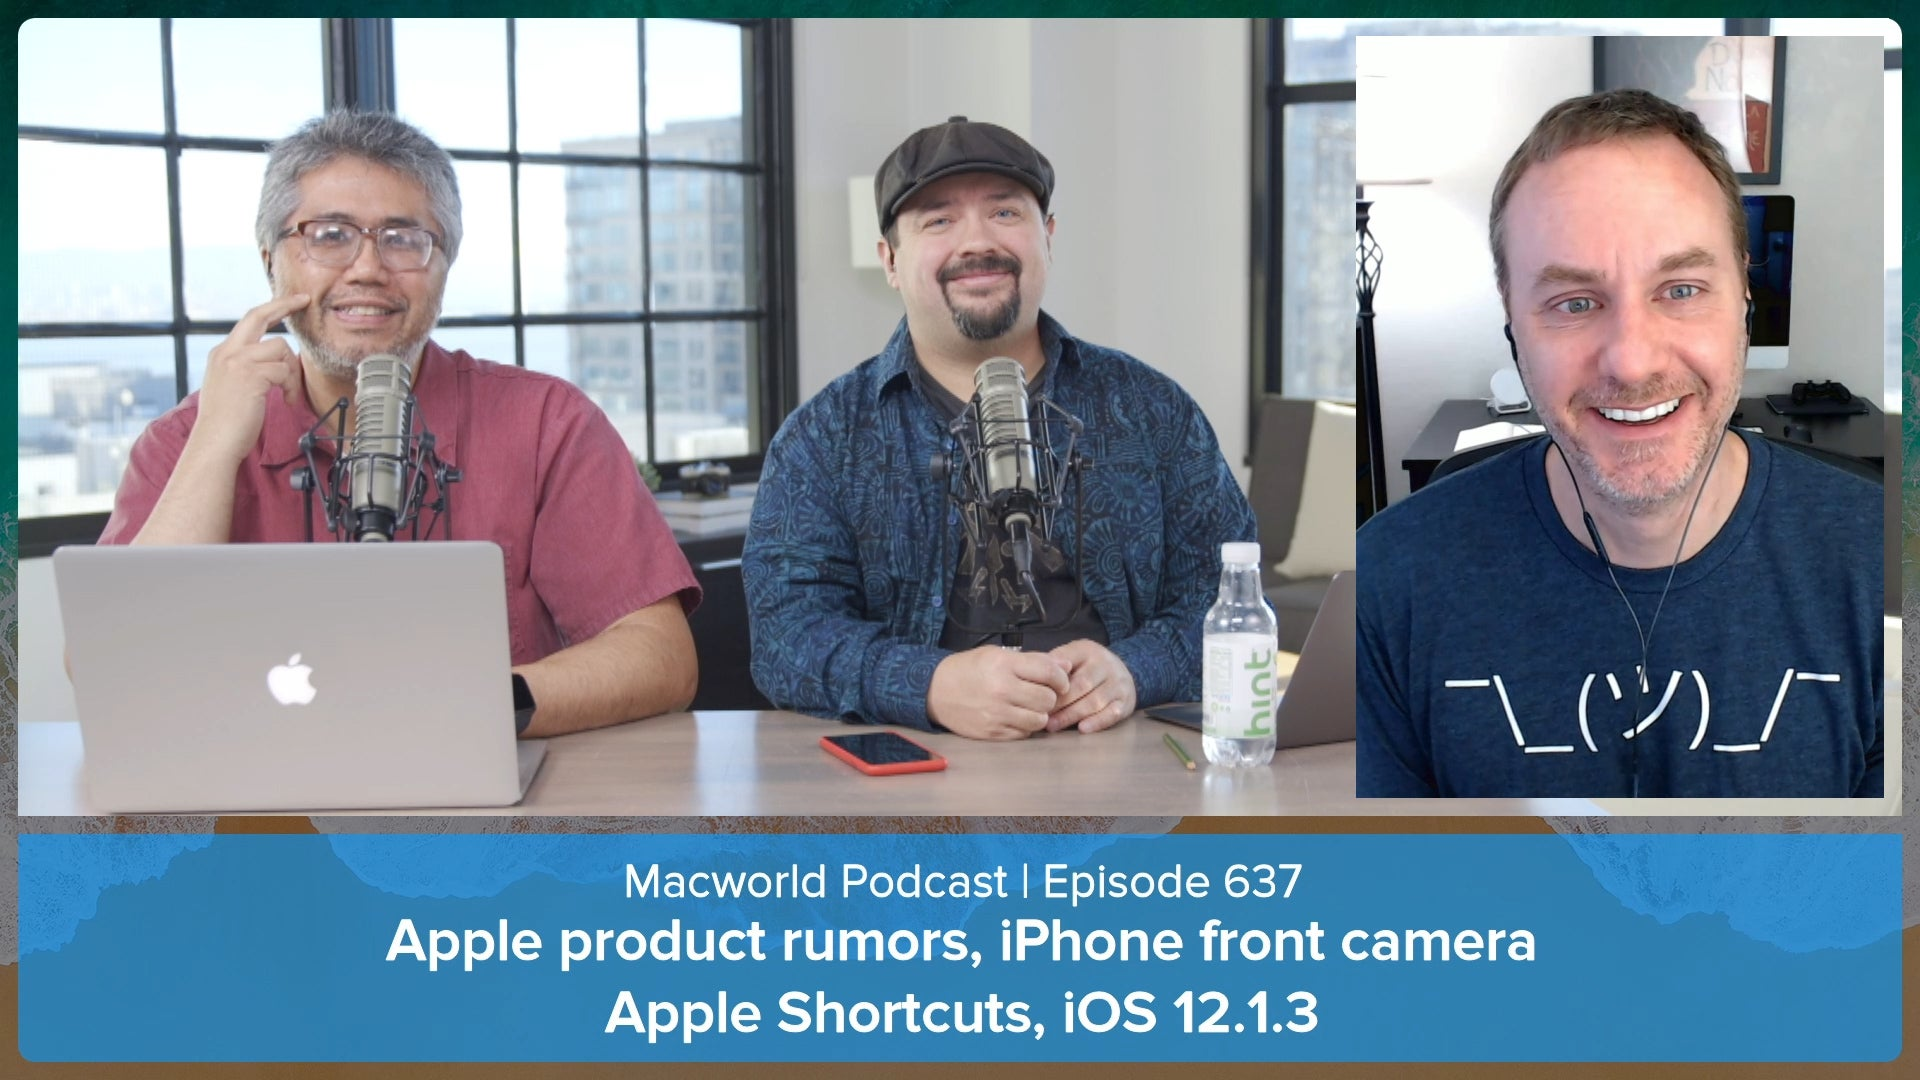 Macworld Podcast 637